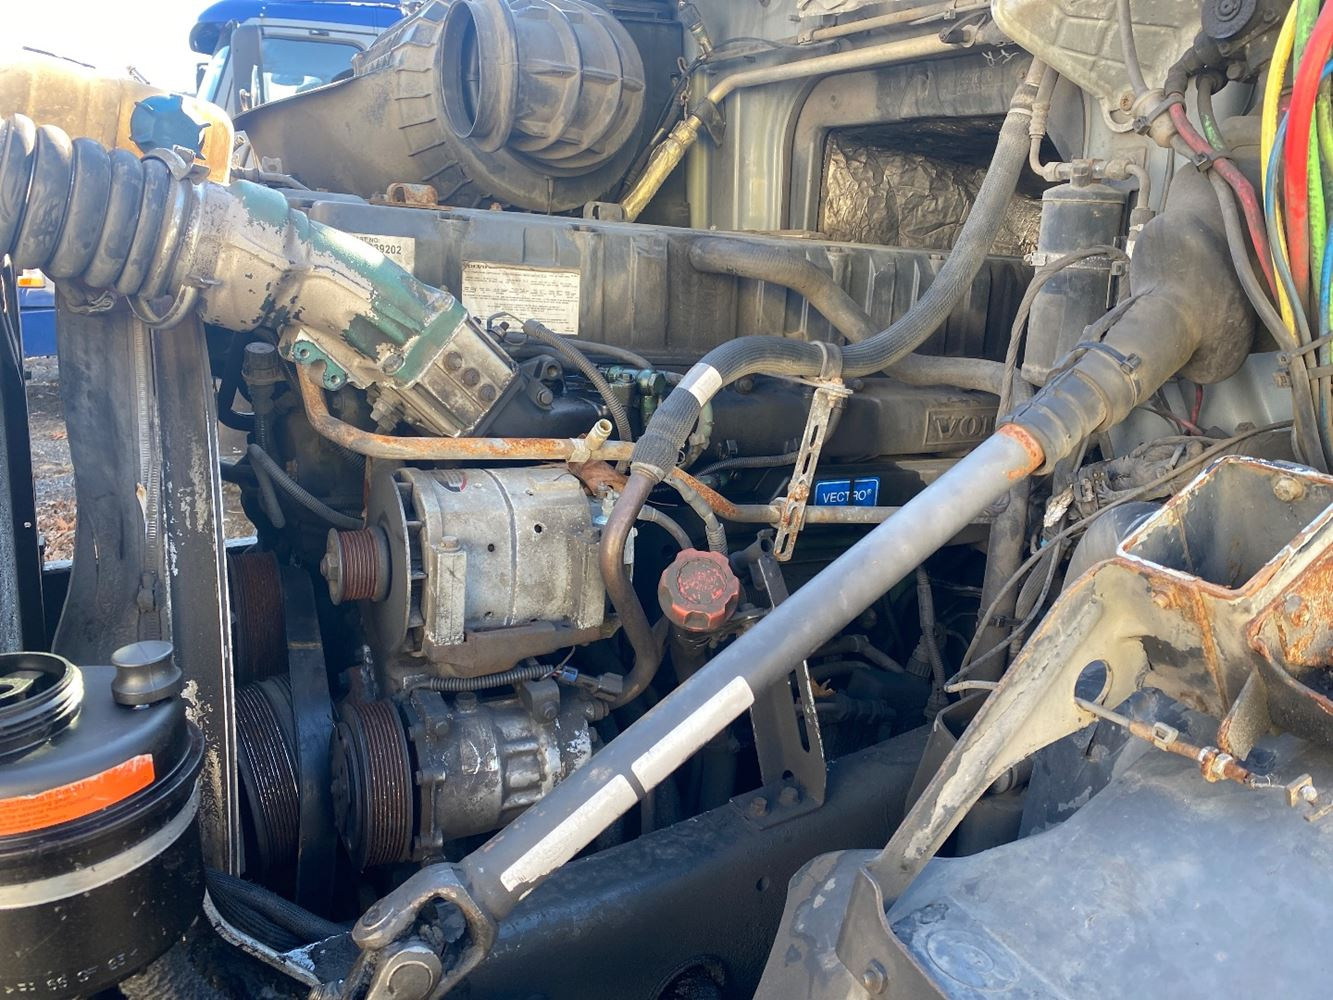 2005 VOLVO VE D12 ENGINE ASSEMBLY TRUCK PARTS #706805